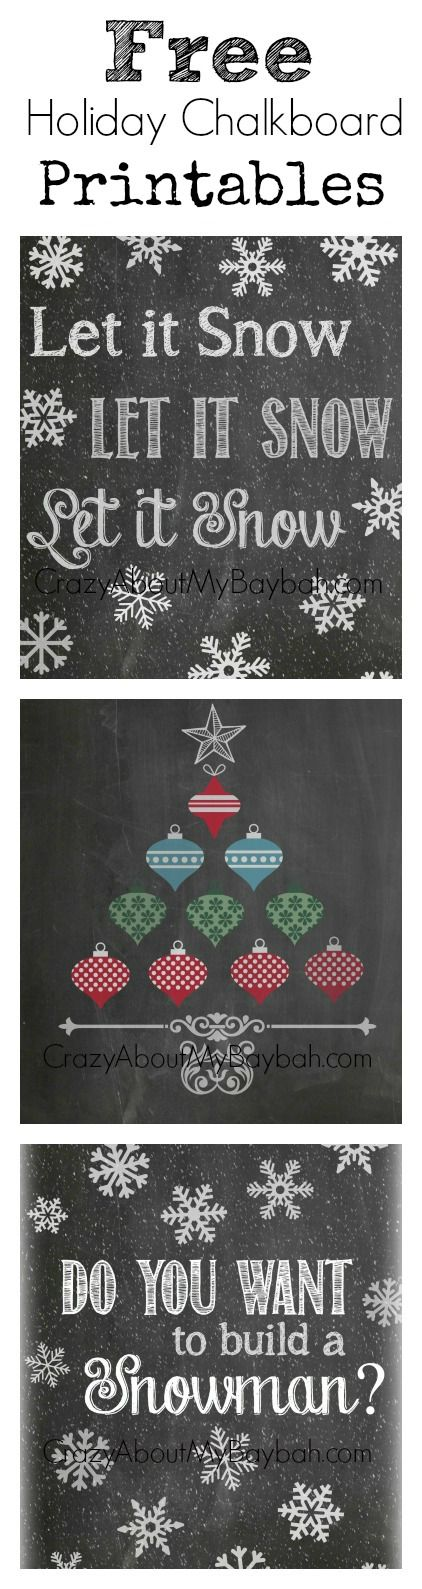 Free Holiday / Winter Chalkboard Printables